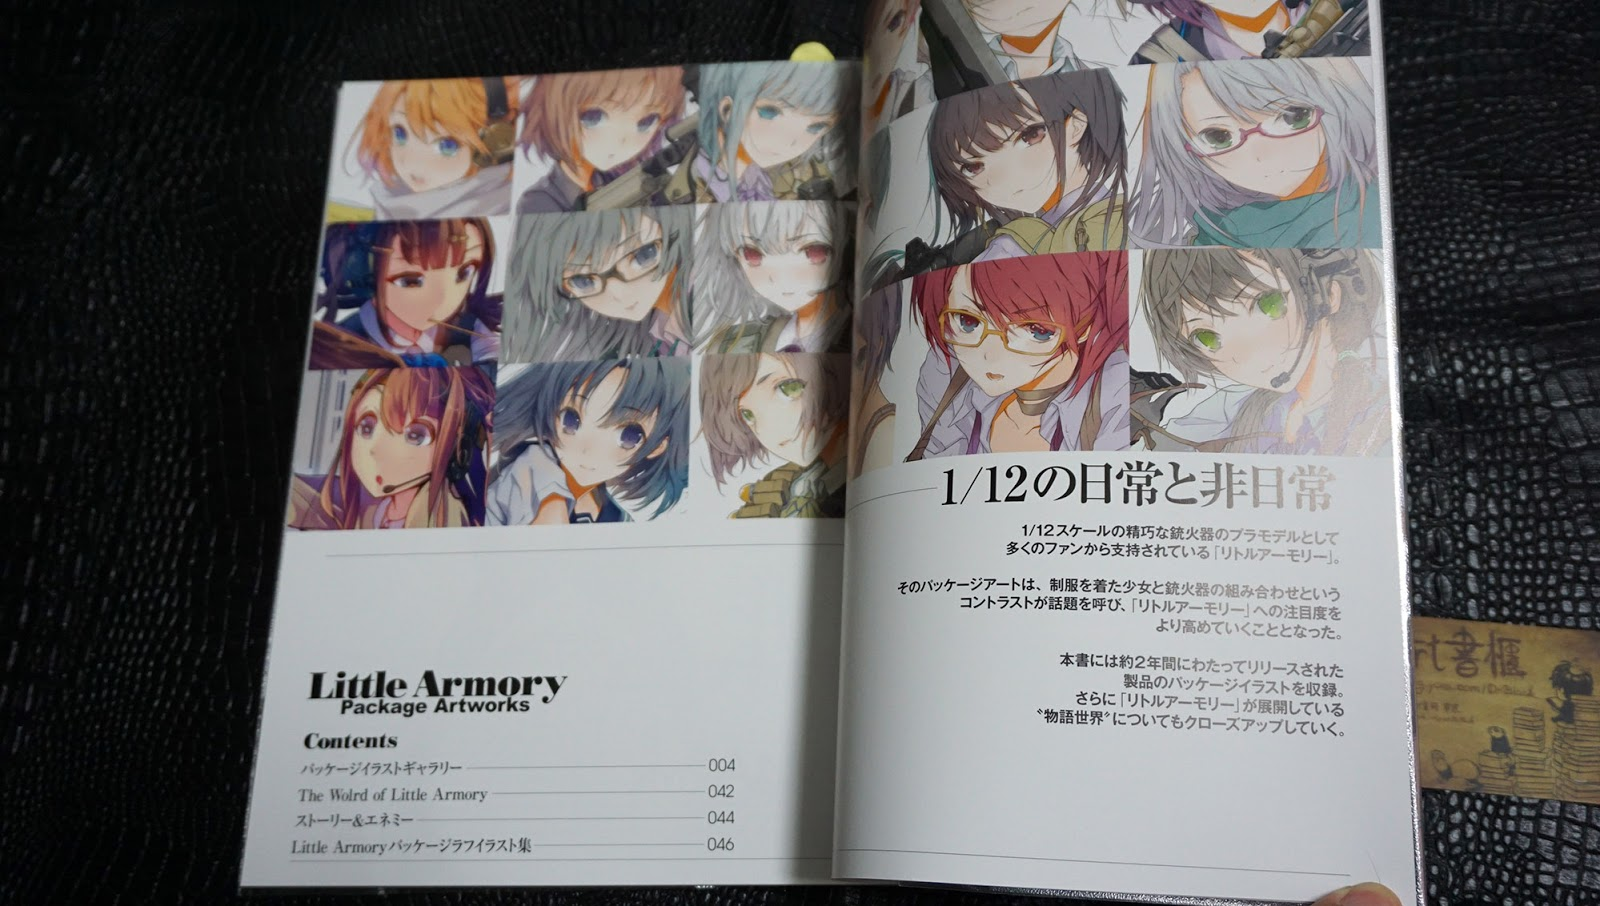 ART書櫃 Book Review: Little Armory Package ARTWORKS 2014-2016 美術集 リトルアーモリー パッケージアートワークス